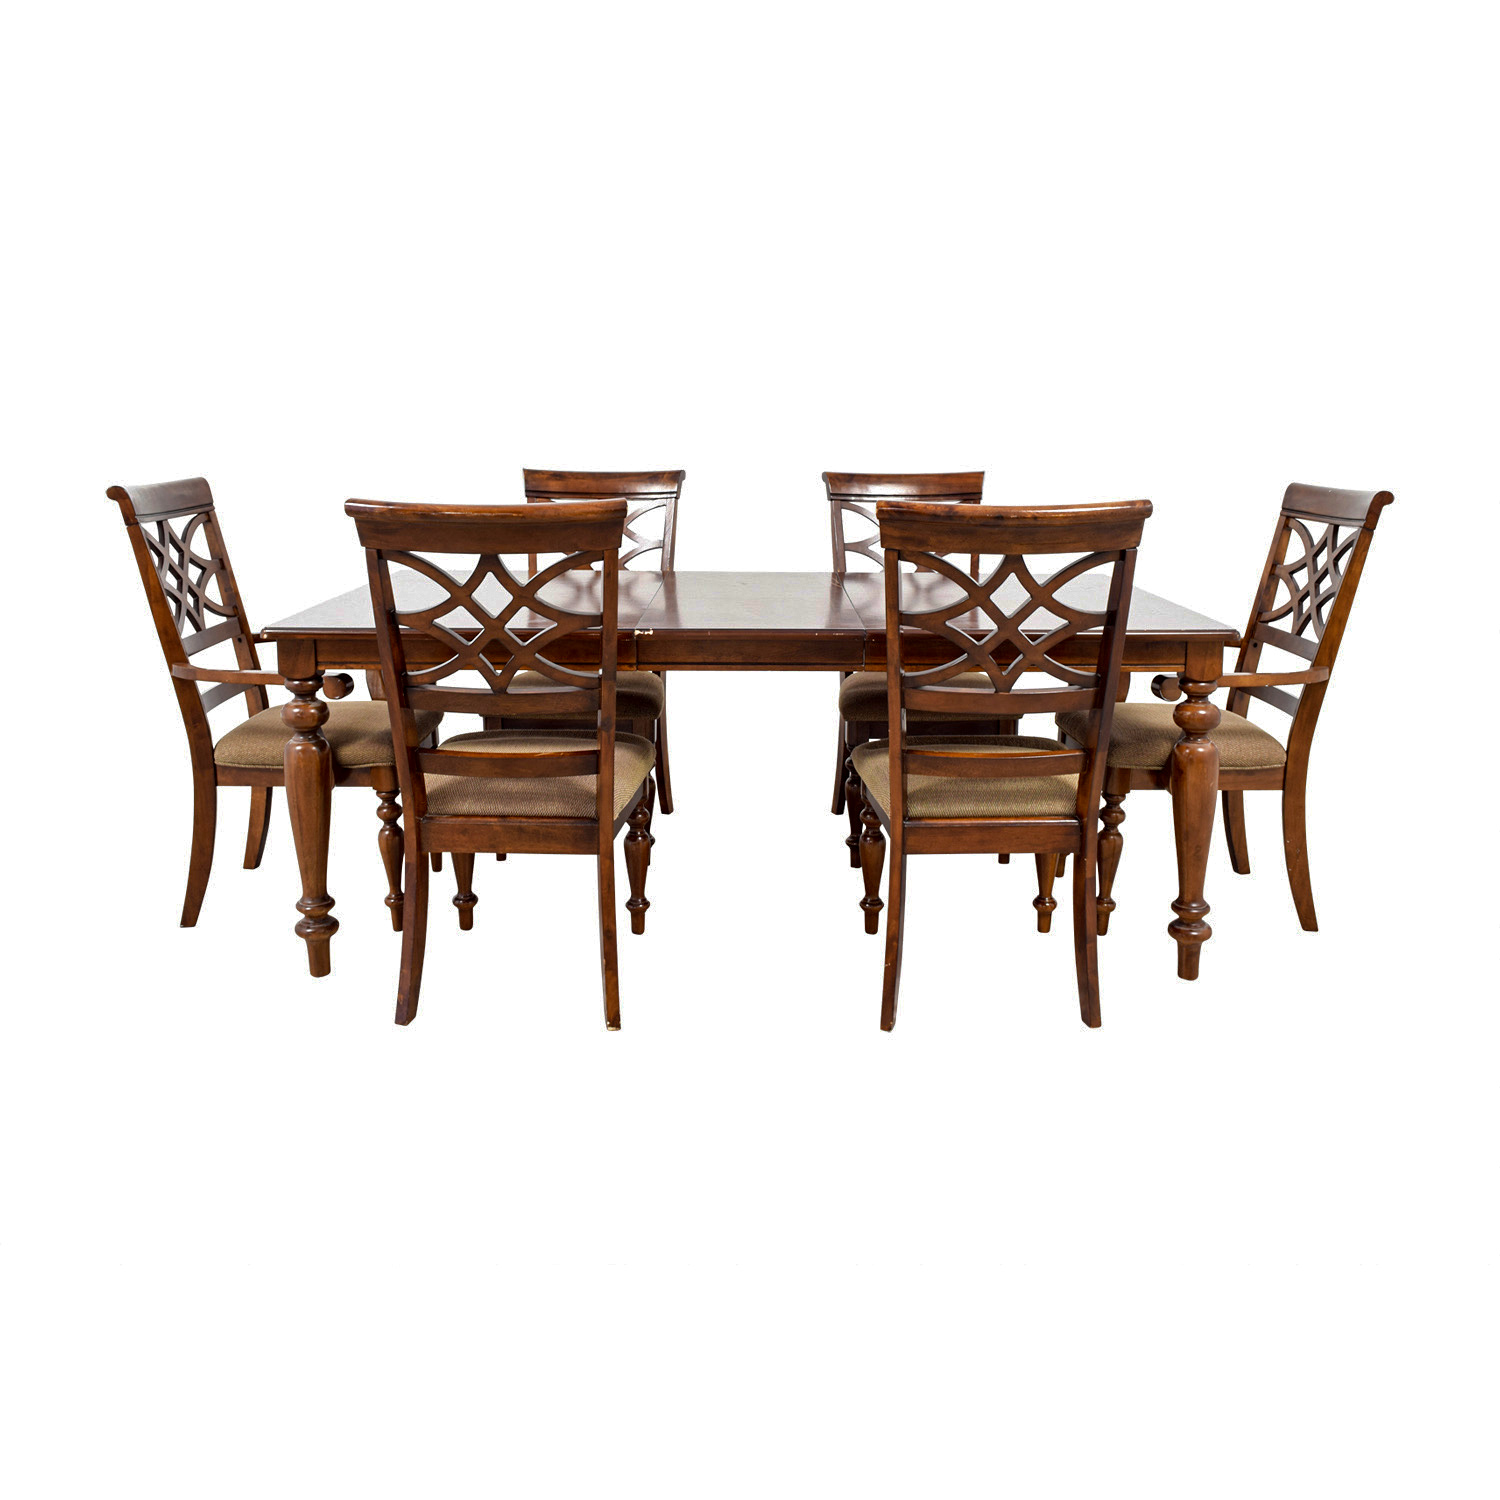 Bob's Furniture Bob's Furniture Wood Dining Set Table with Extention Leaf nj